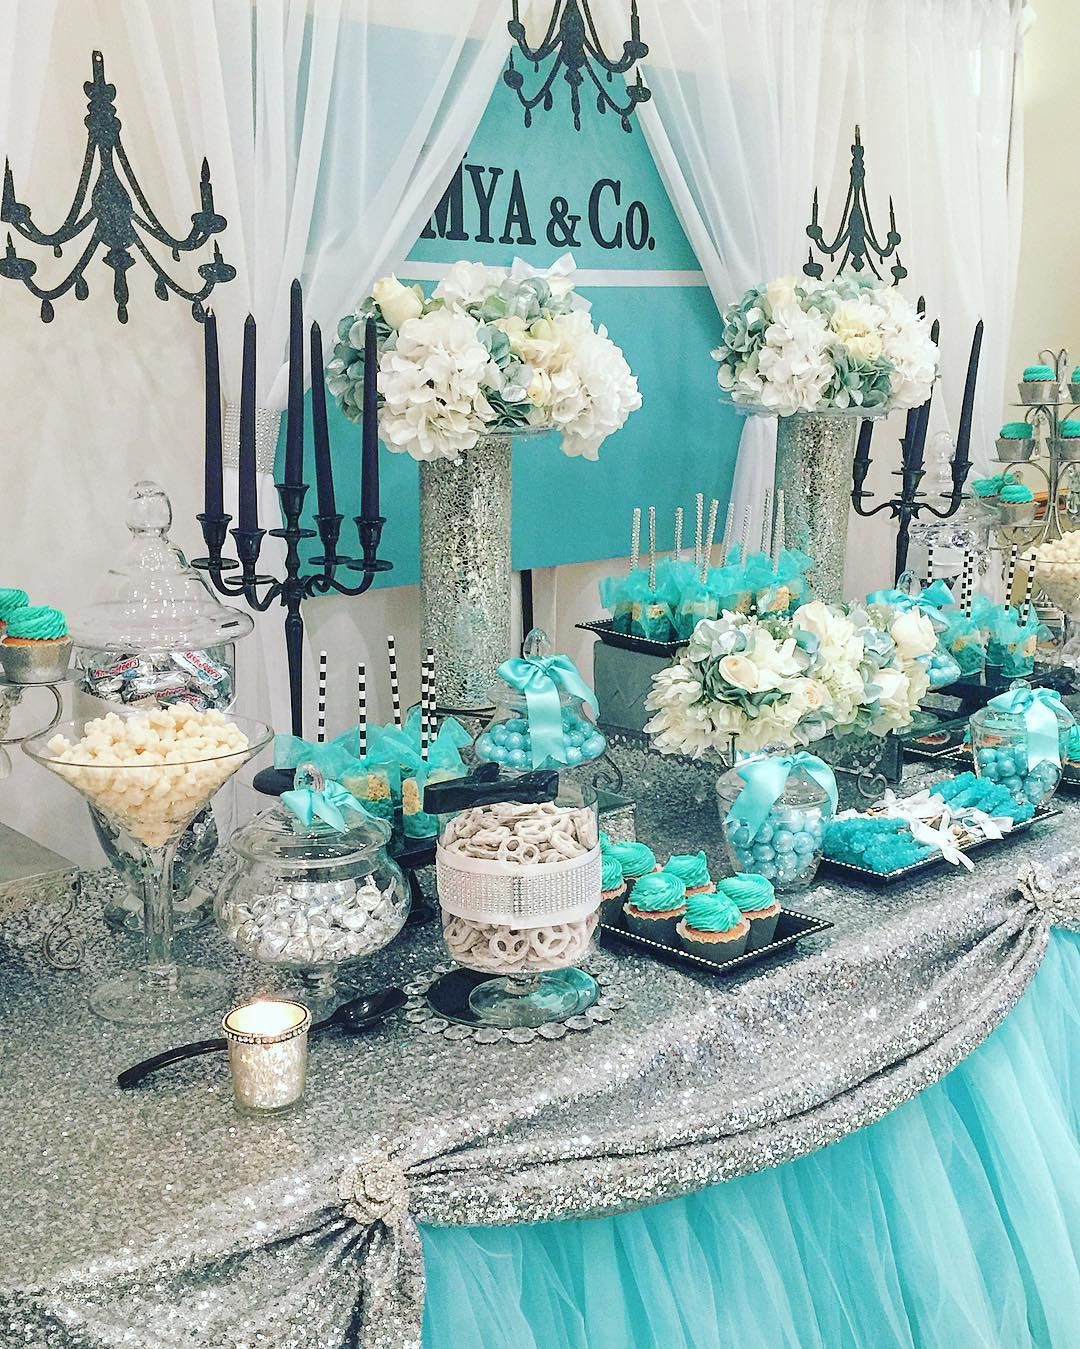 Tiffany Wedding Ideas: Pin By Monica Sellers On Bridal Shower In 2019